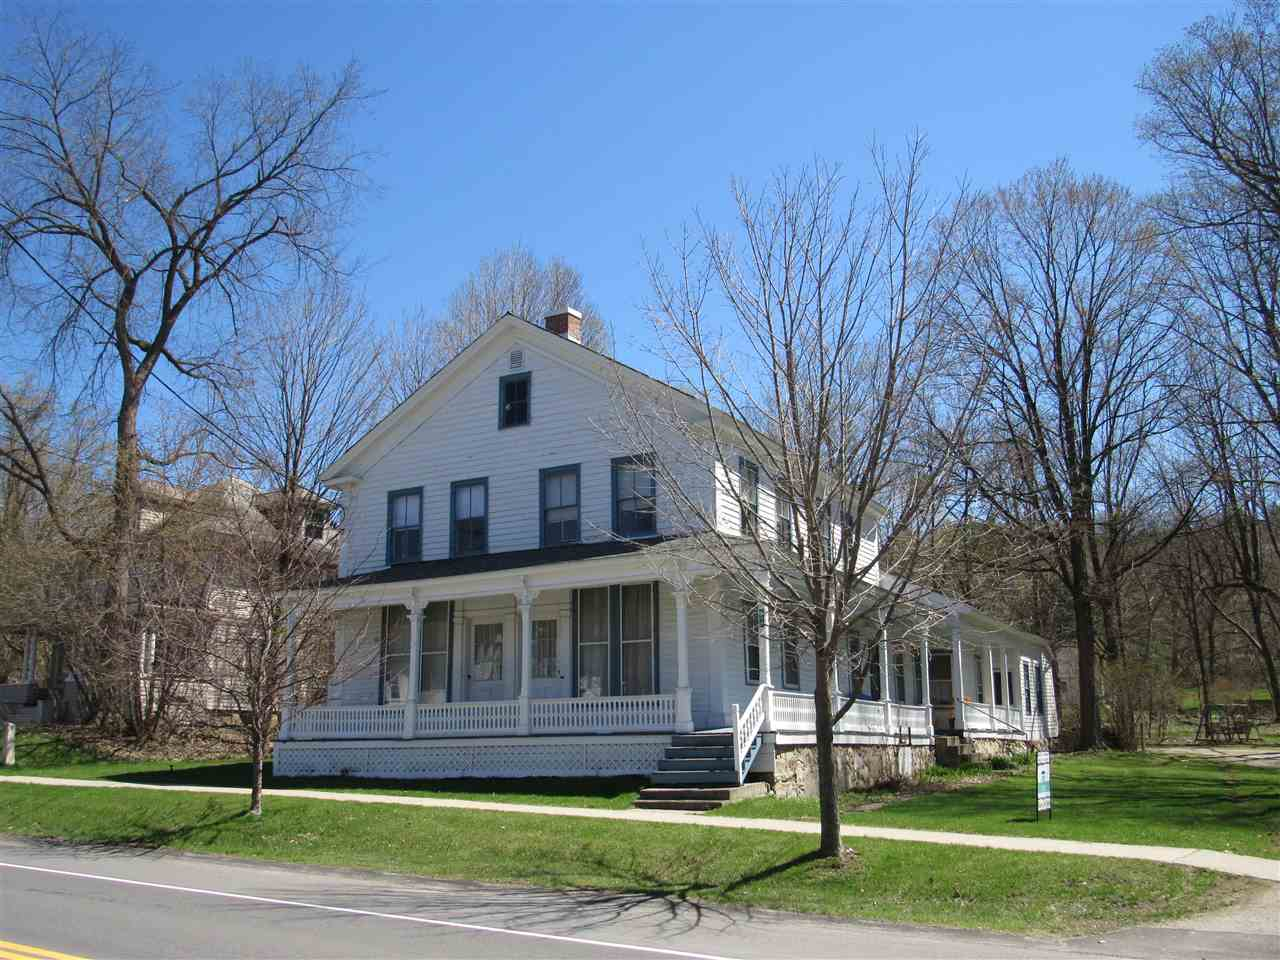 143 South Main Street, Wallingford, VT 05773